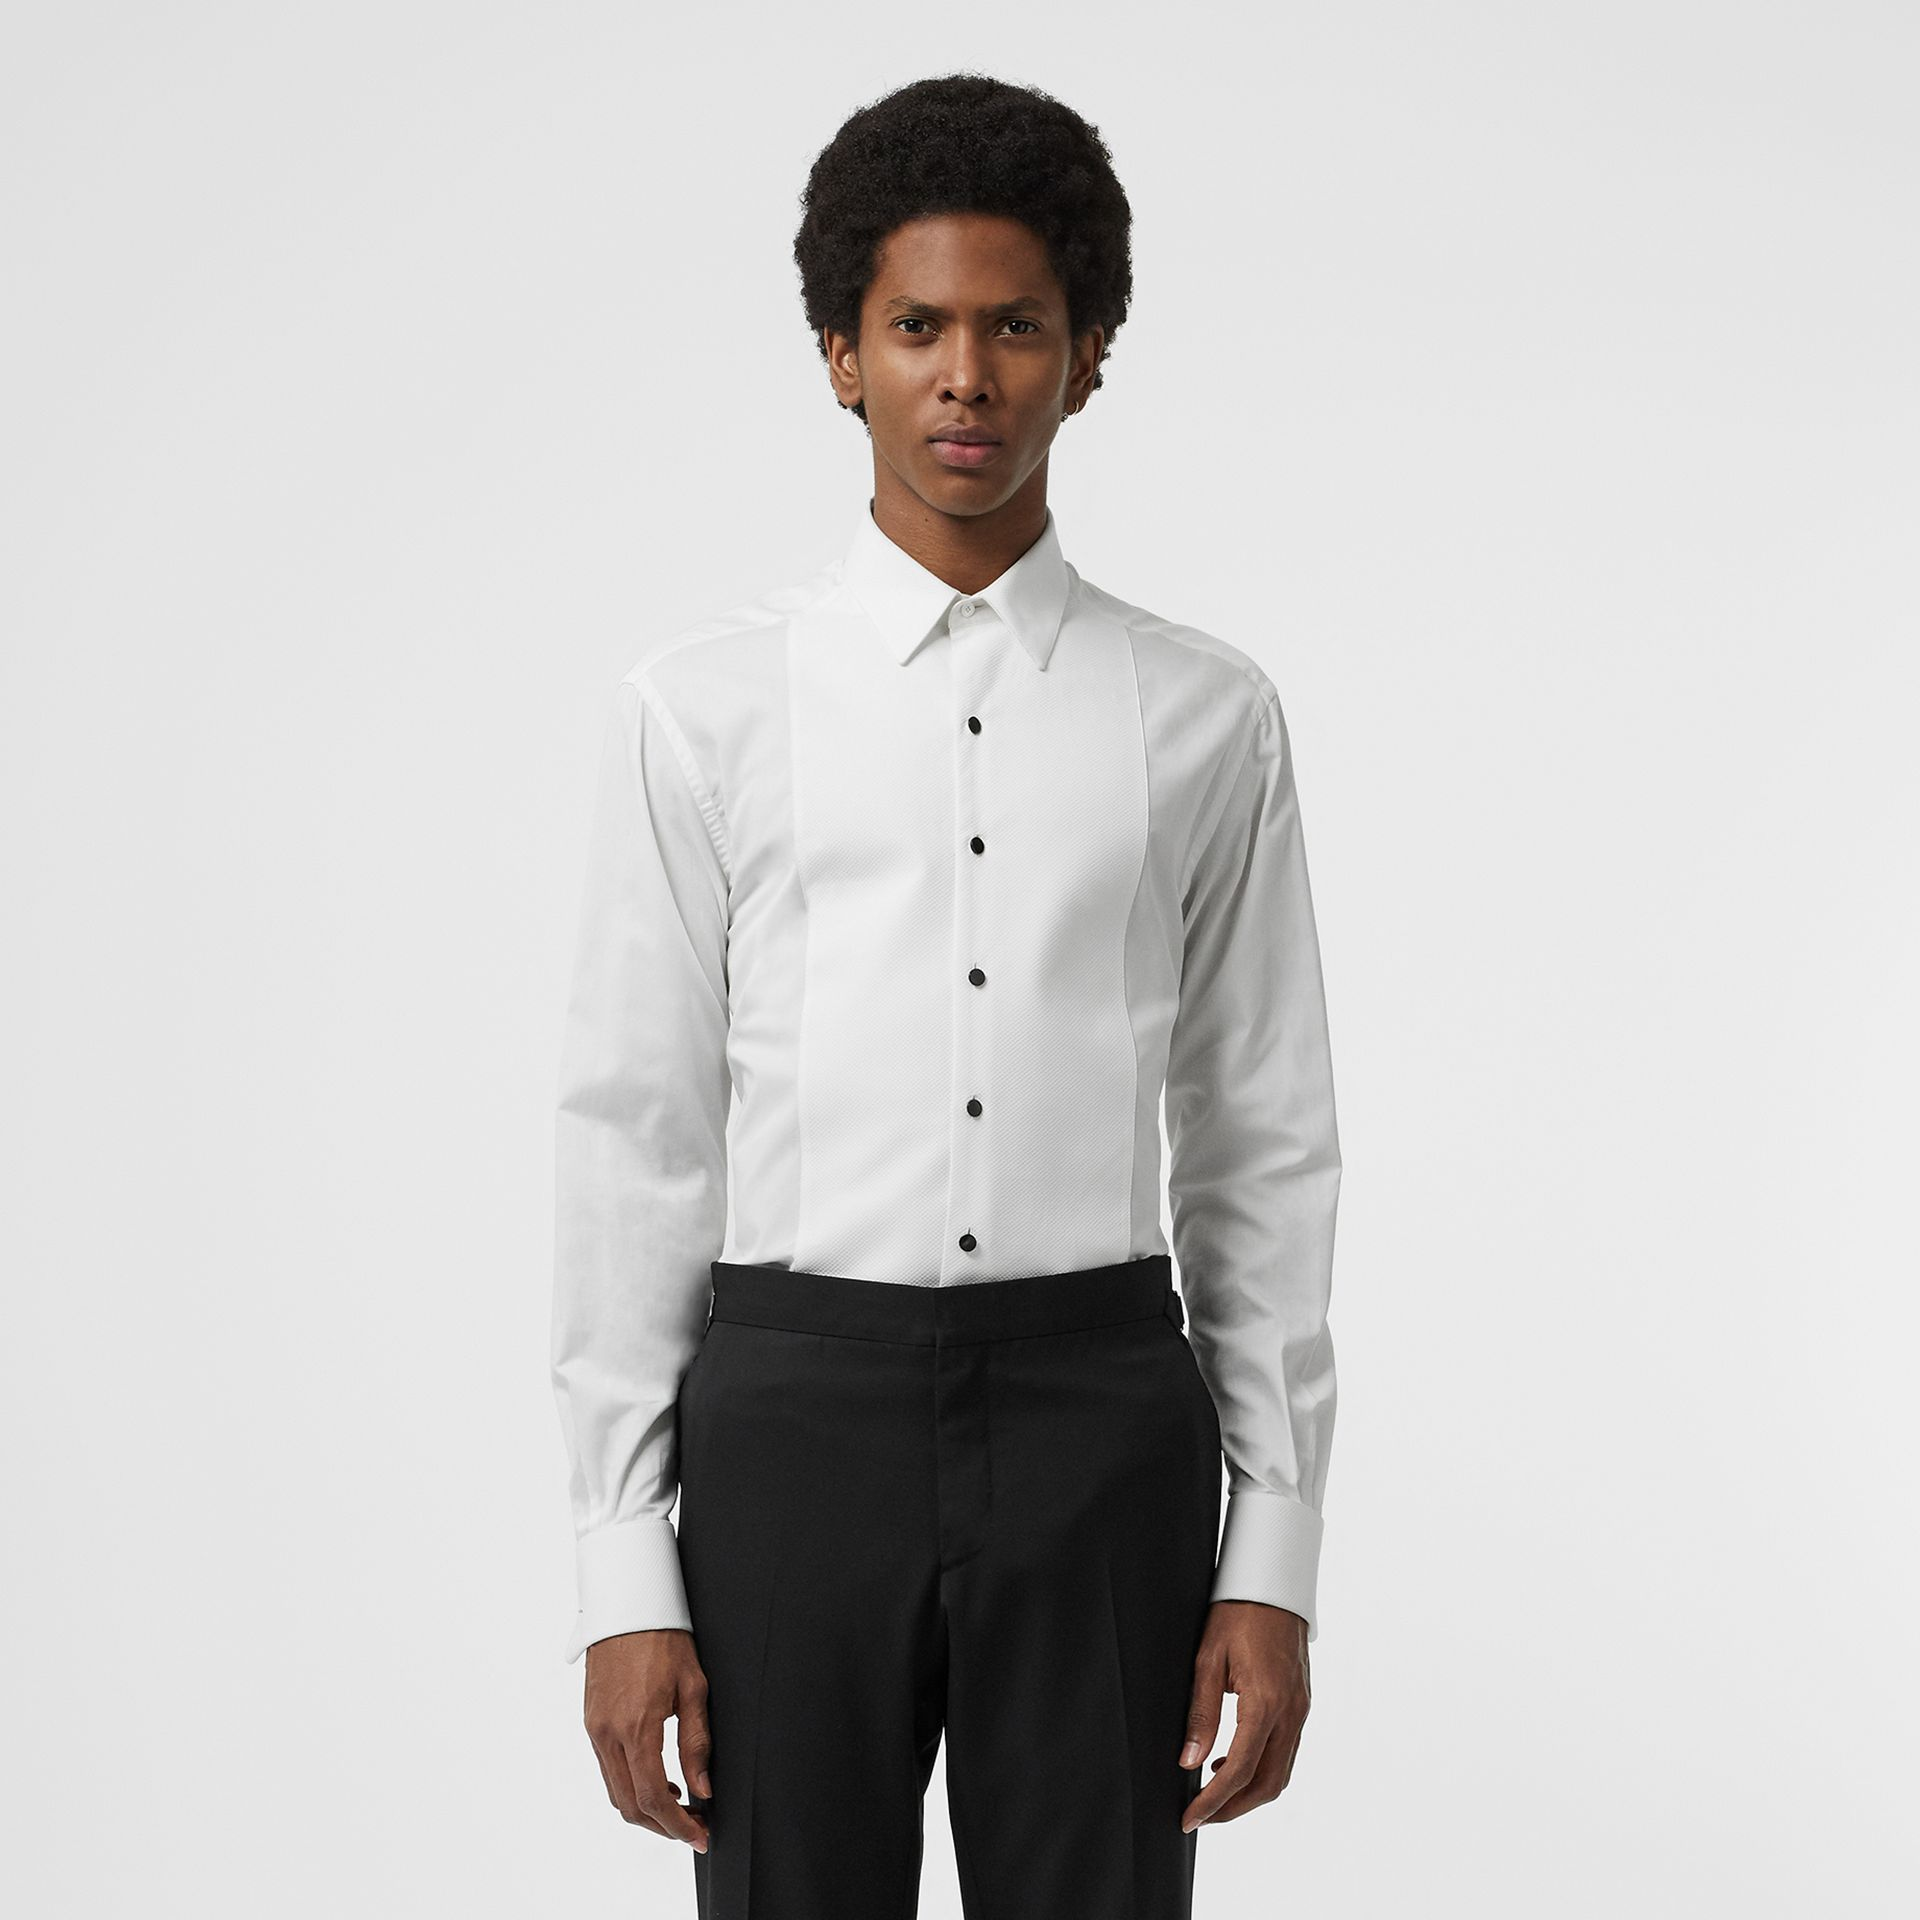 Modern Fit Panelled Bib Cotton Twill Evening Shirt in White - Men | Burberry Singapore - gallery image 0